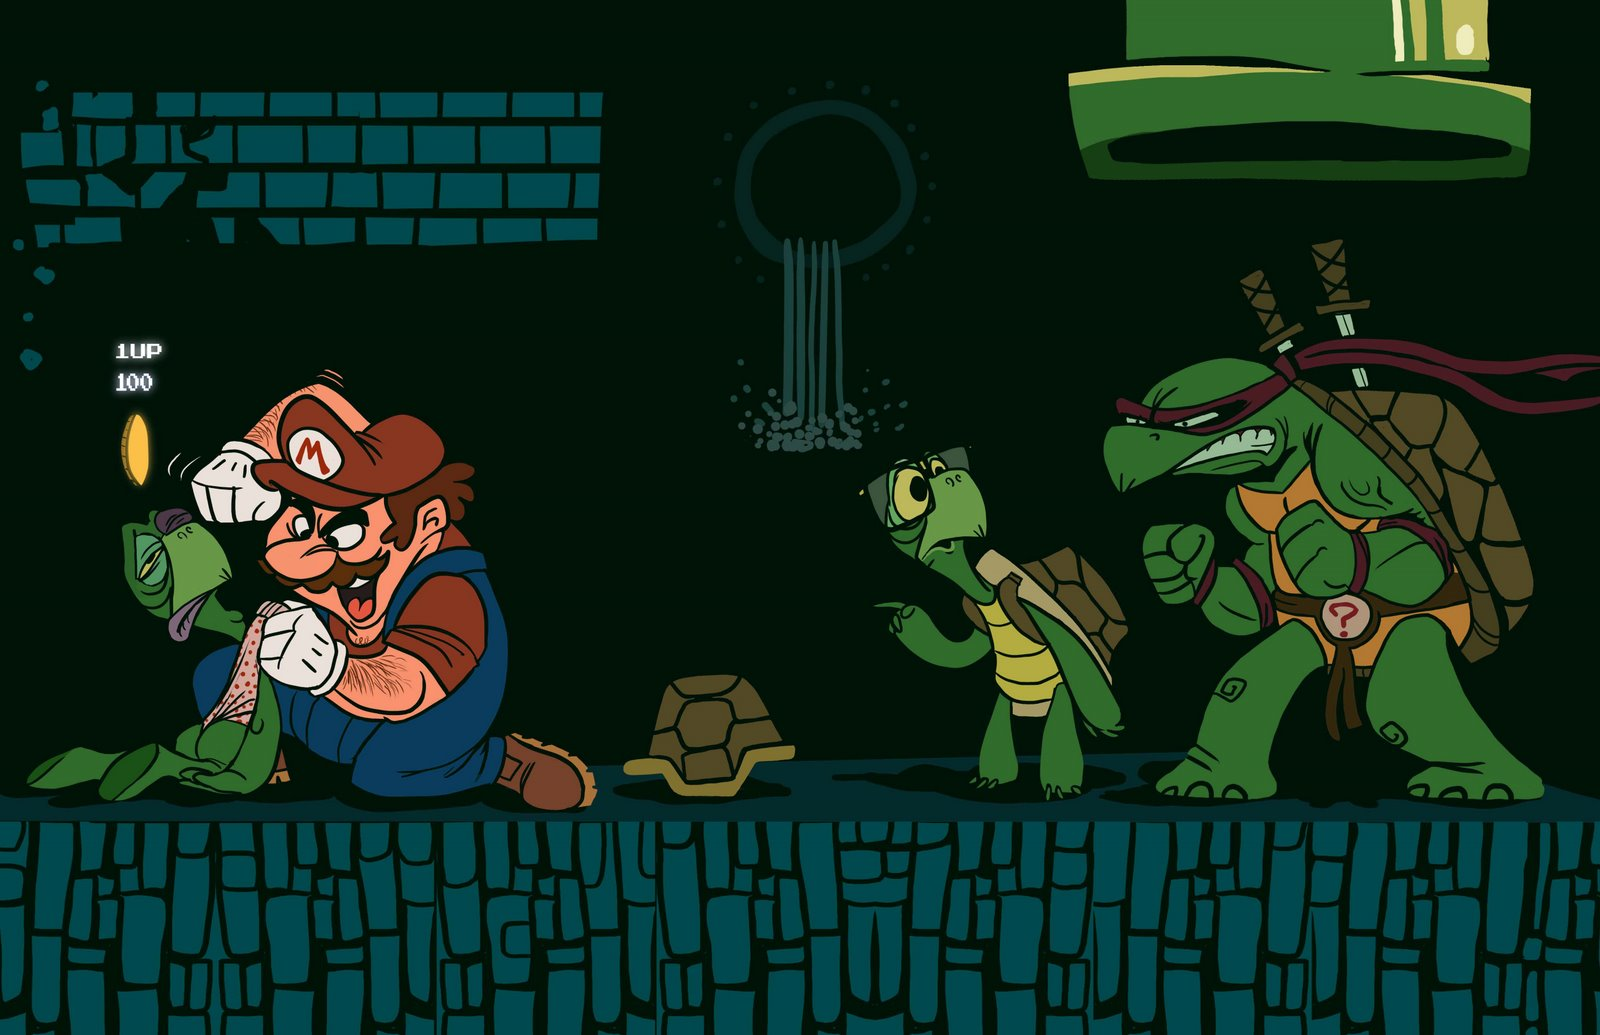 TMNT wallpaper miscellaneous 26 (1600х1035)